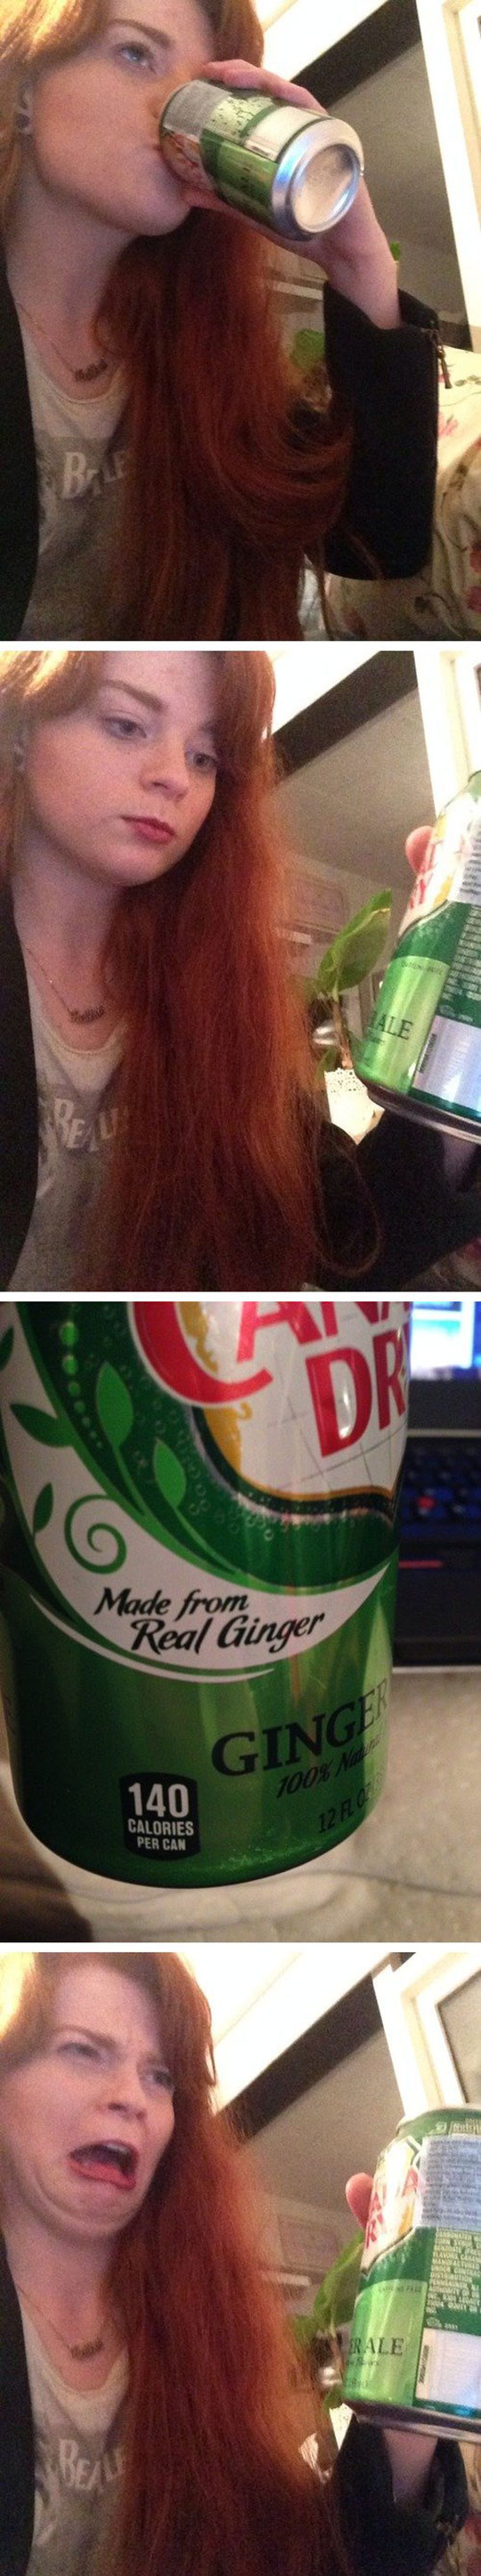 funny-red-head-girl-drinking-Canada-Dry